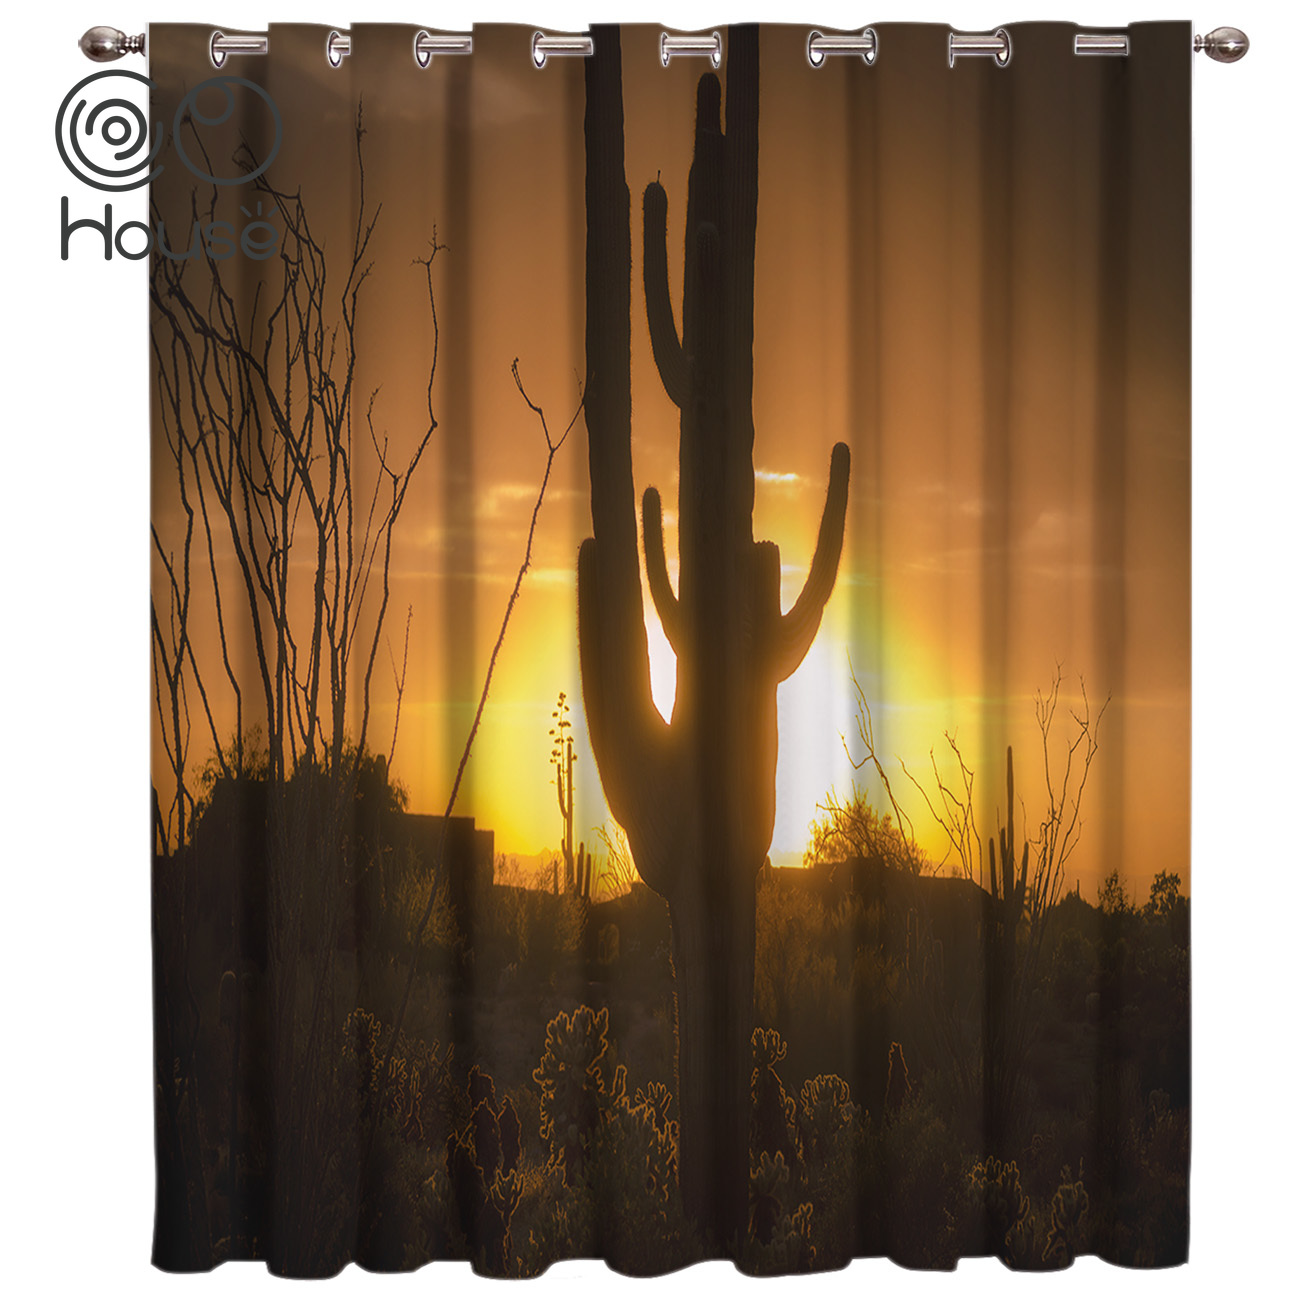 CoCoHouse Sunset Cactus Silhouette Spiny Orange Shrub Room Curtains Large Window Living Room Blackout Outdoor Kitchen Bedroom